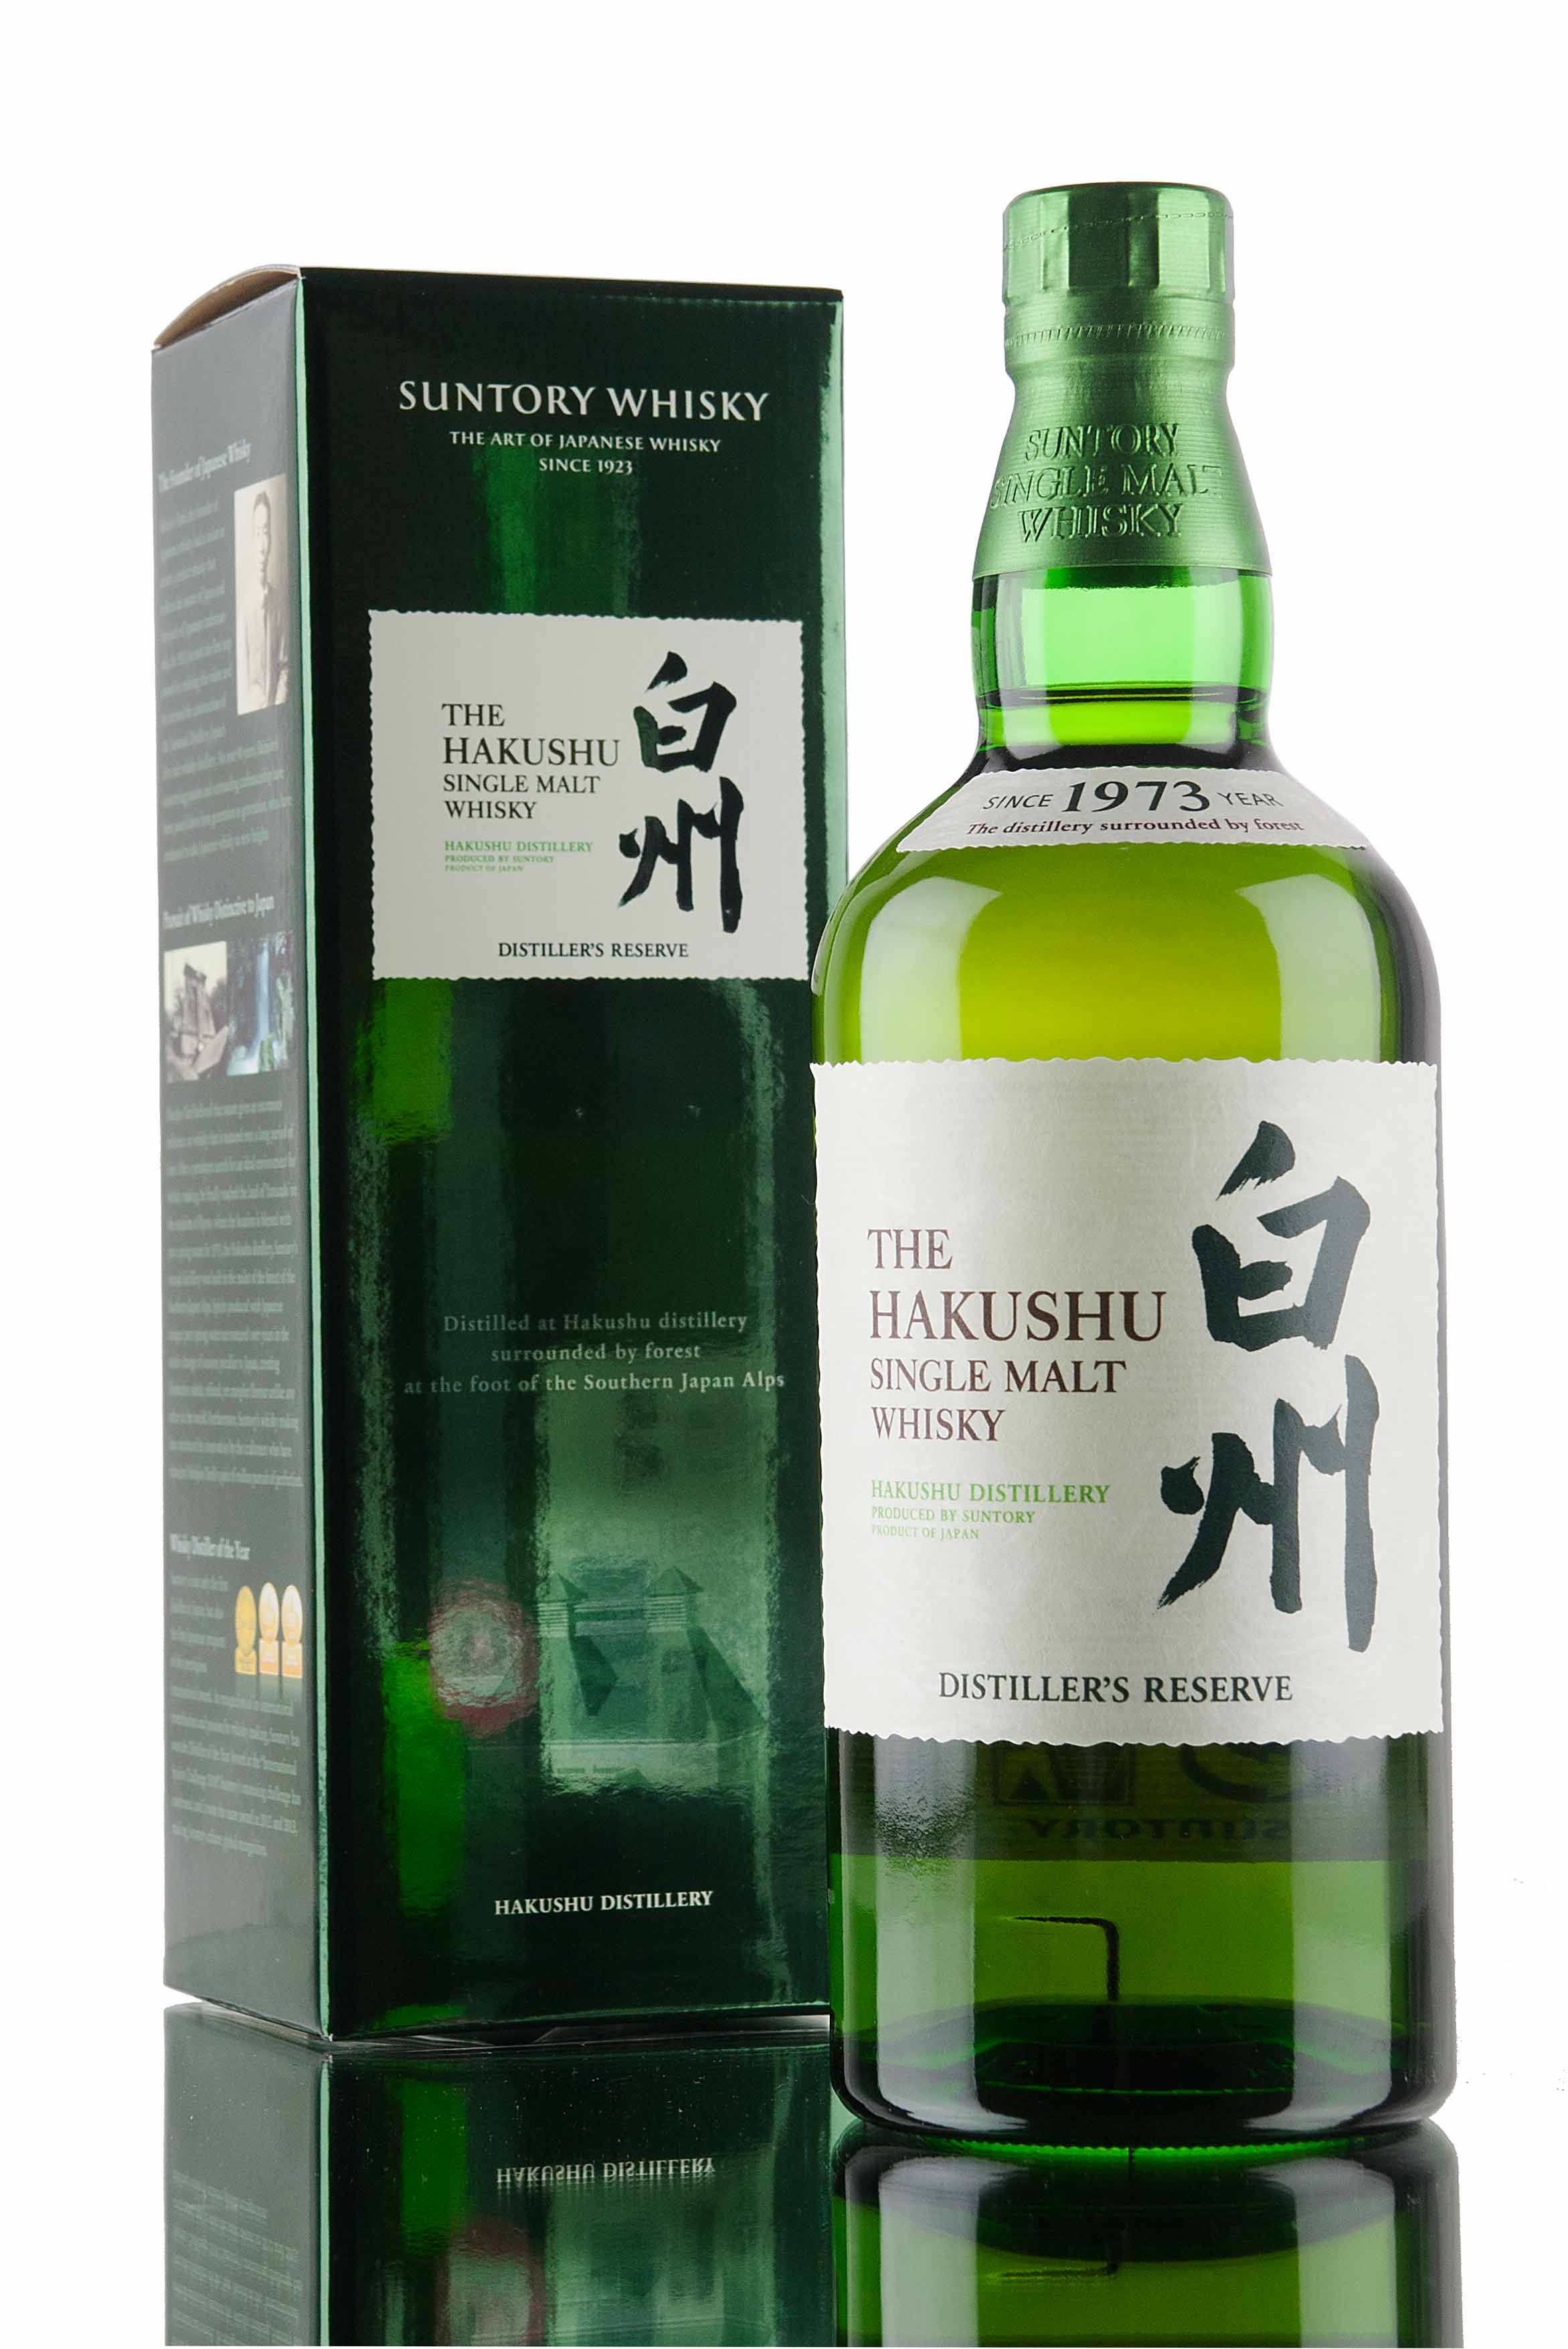 The Hakushu Distiller's Reserve